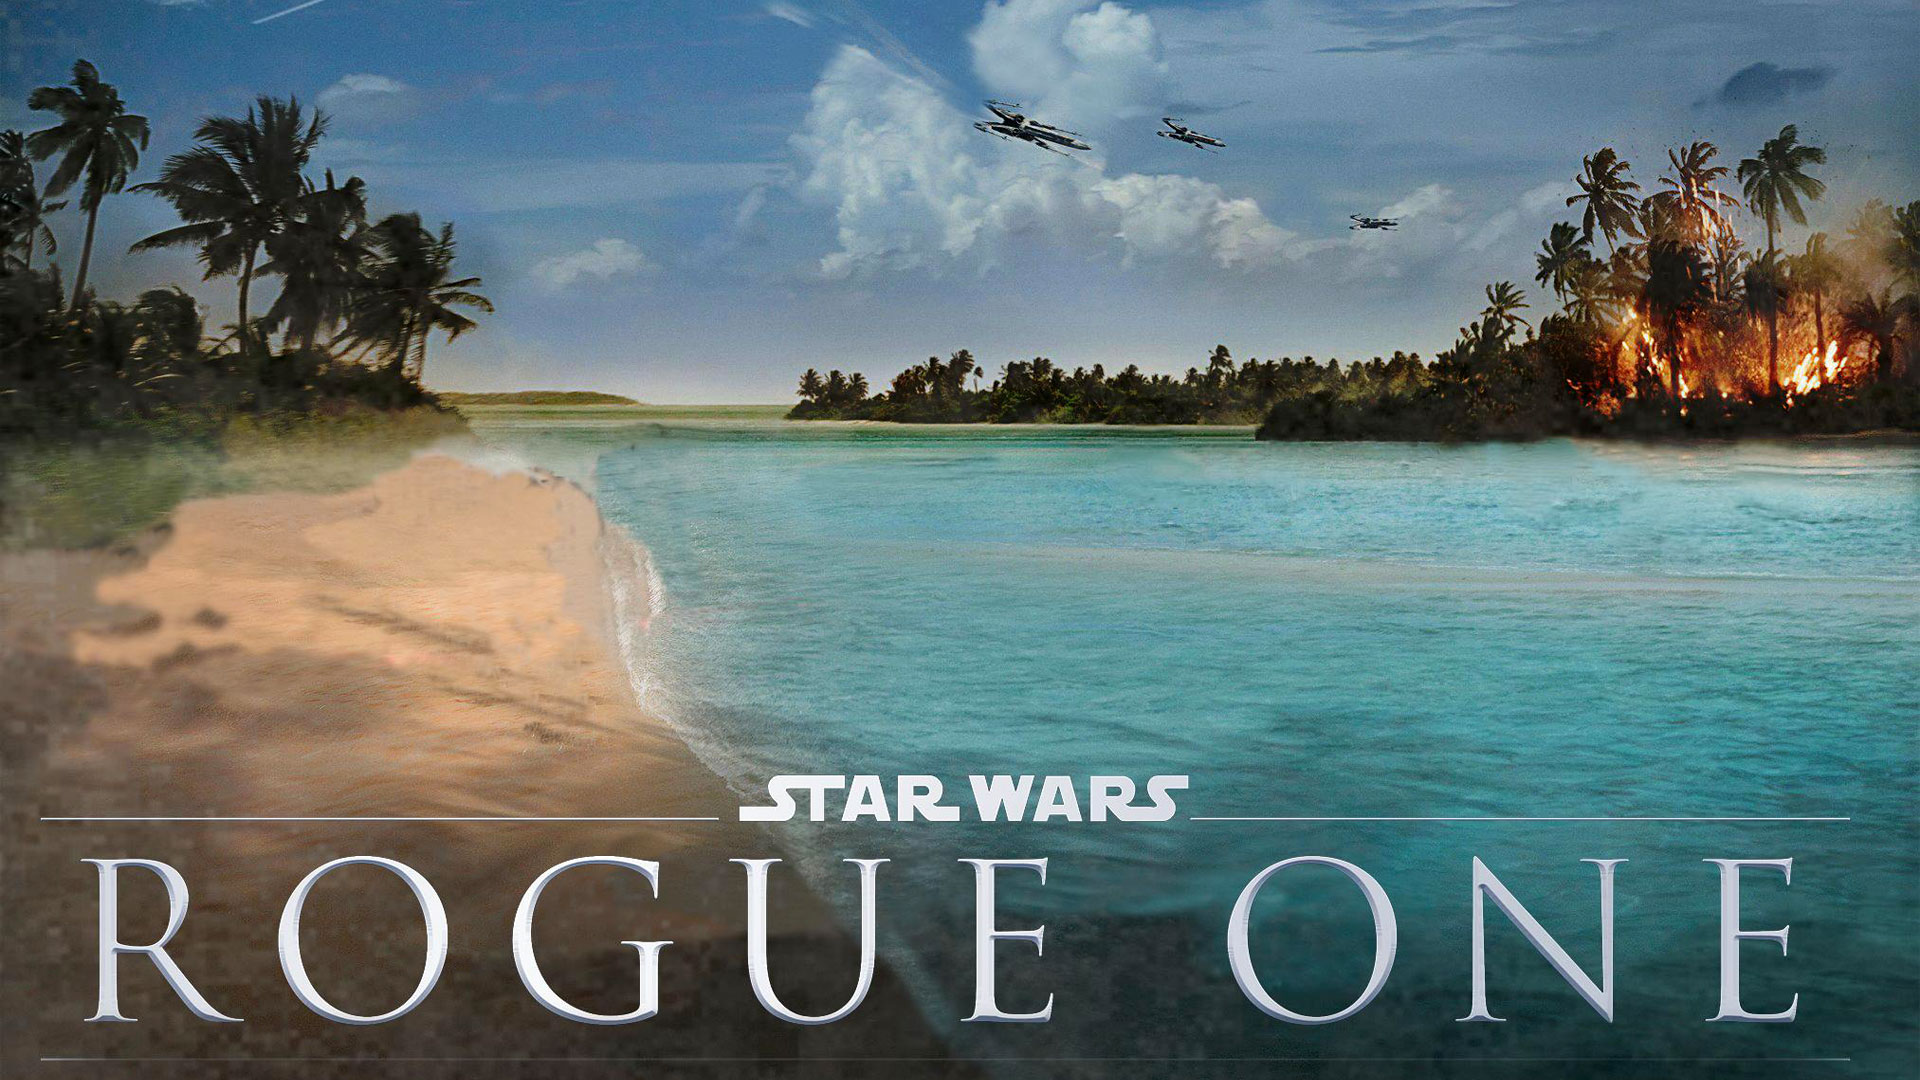 Rogue One wallpaper 11